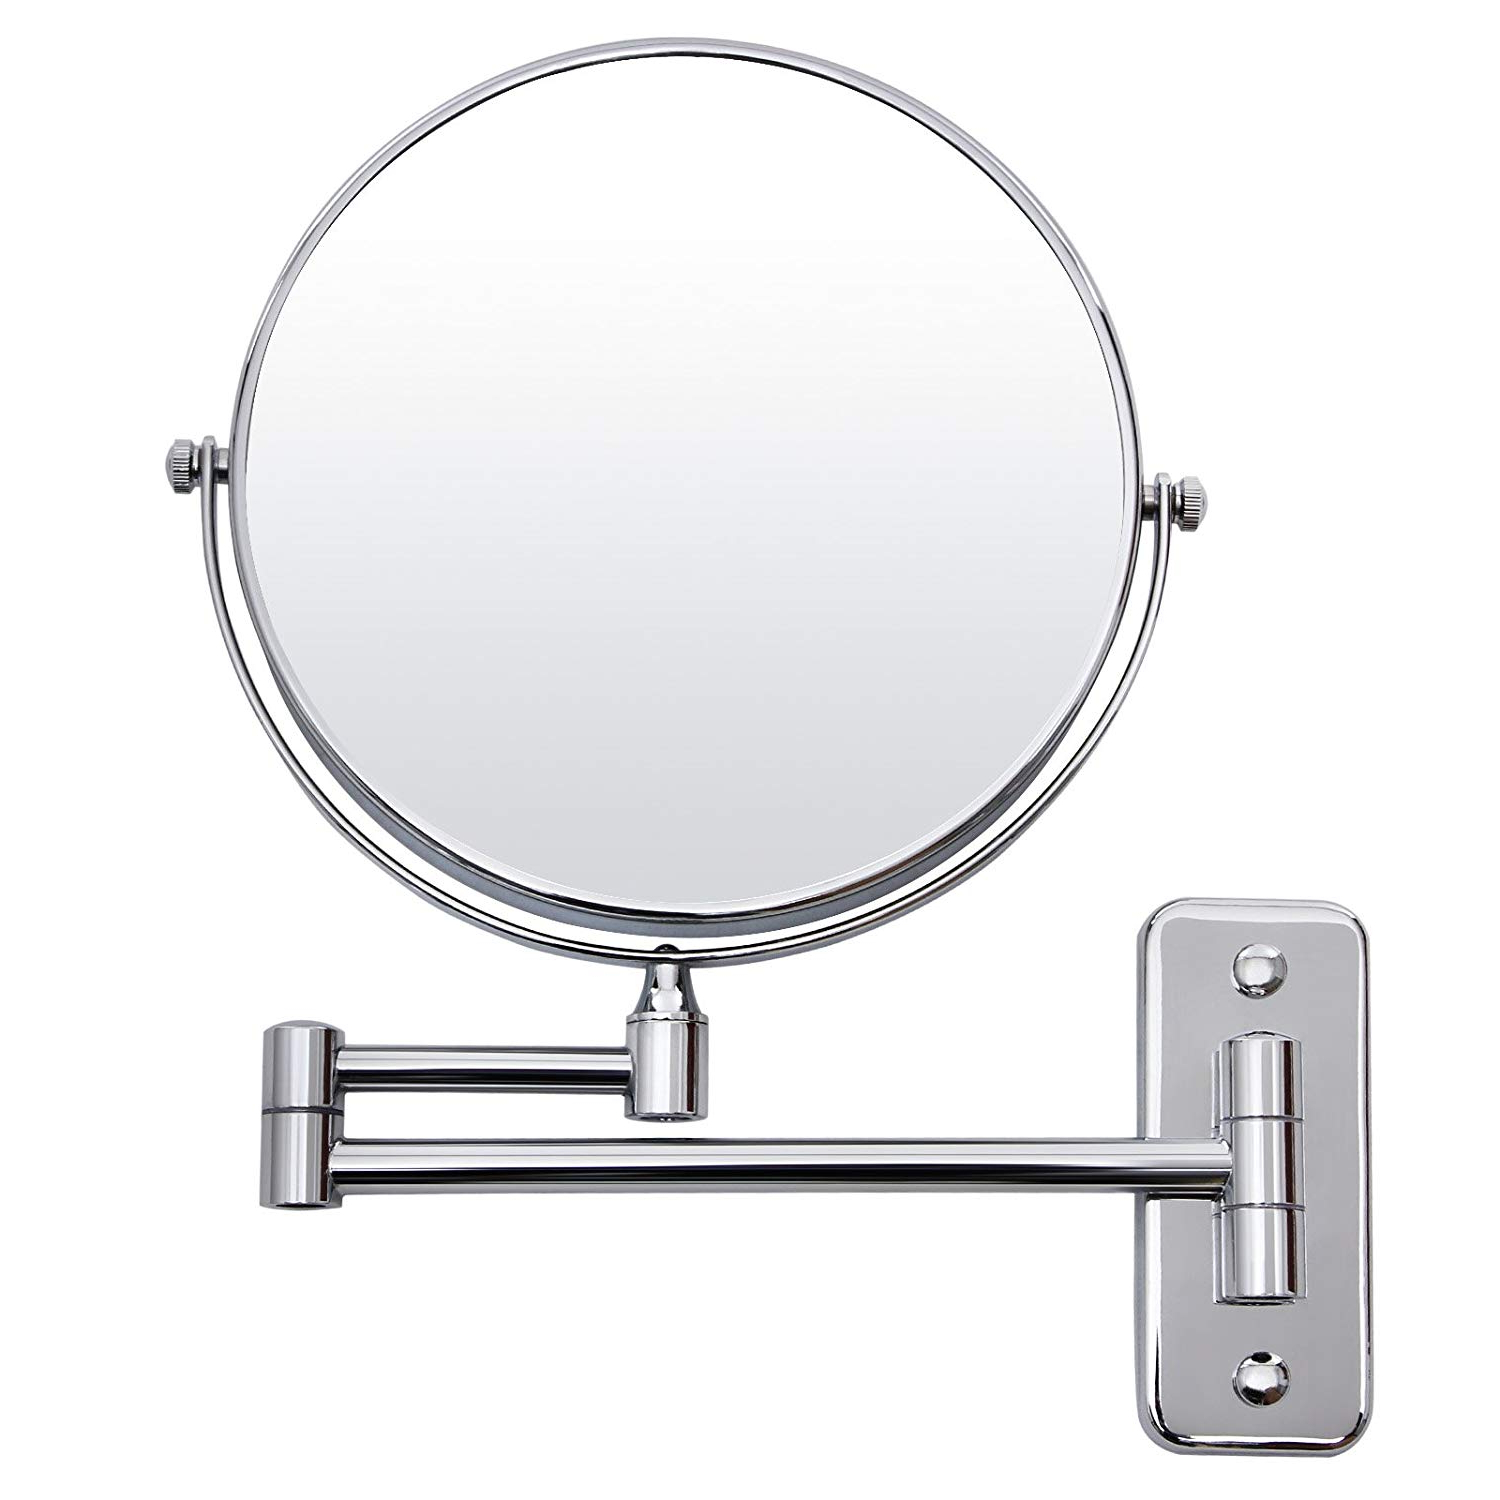 Folding Wall Mirrors In Most Recent Songmics 5 Compartment + Normal Cosmetic Mirror, 8 Inch Make Up Mirror  Shaving Mirror Folding Wall Mirror Bbm (View 4 of 20)